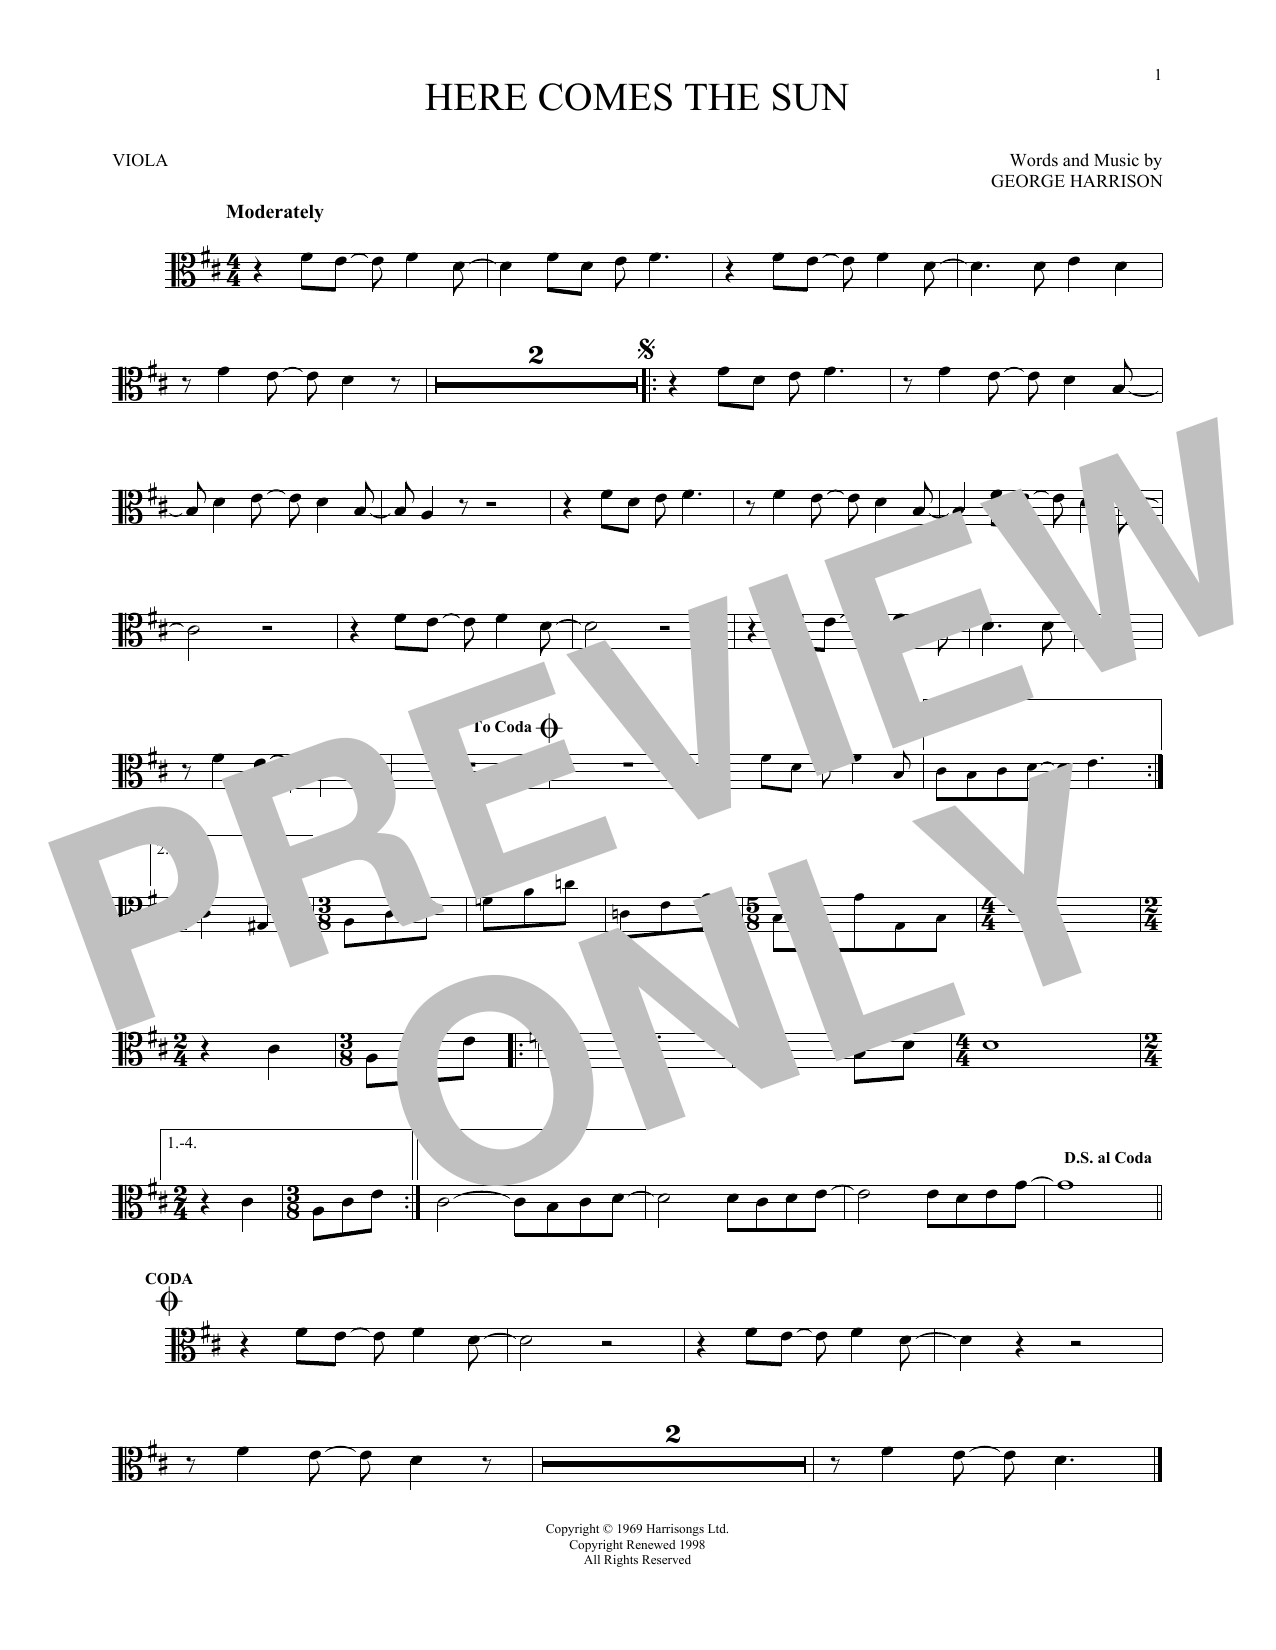 Here Comes The Sun Chords The Beatles Here Comes The Sun Sheet Music Notes Chords Download Printable Viola Sku 171202